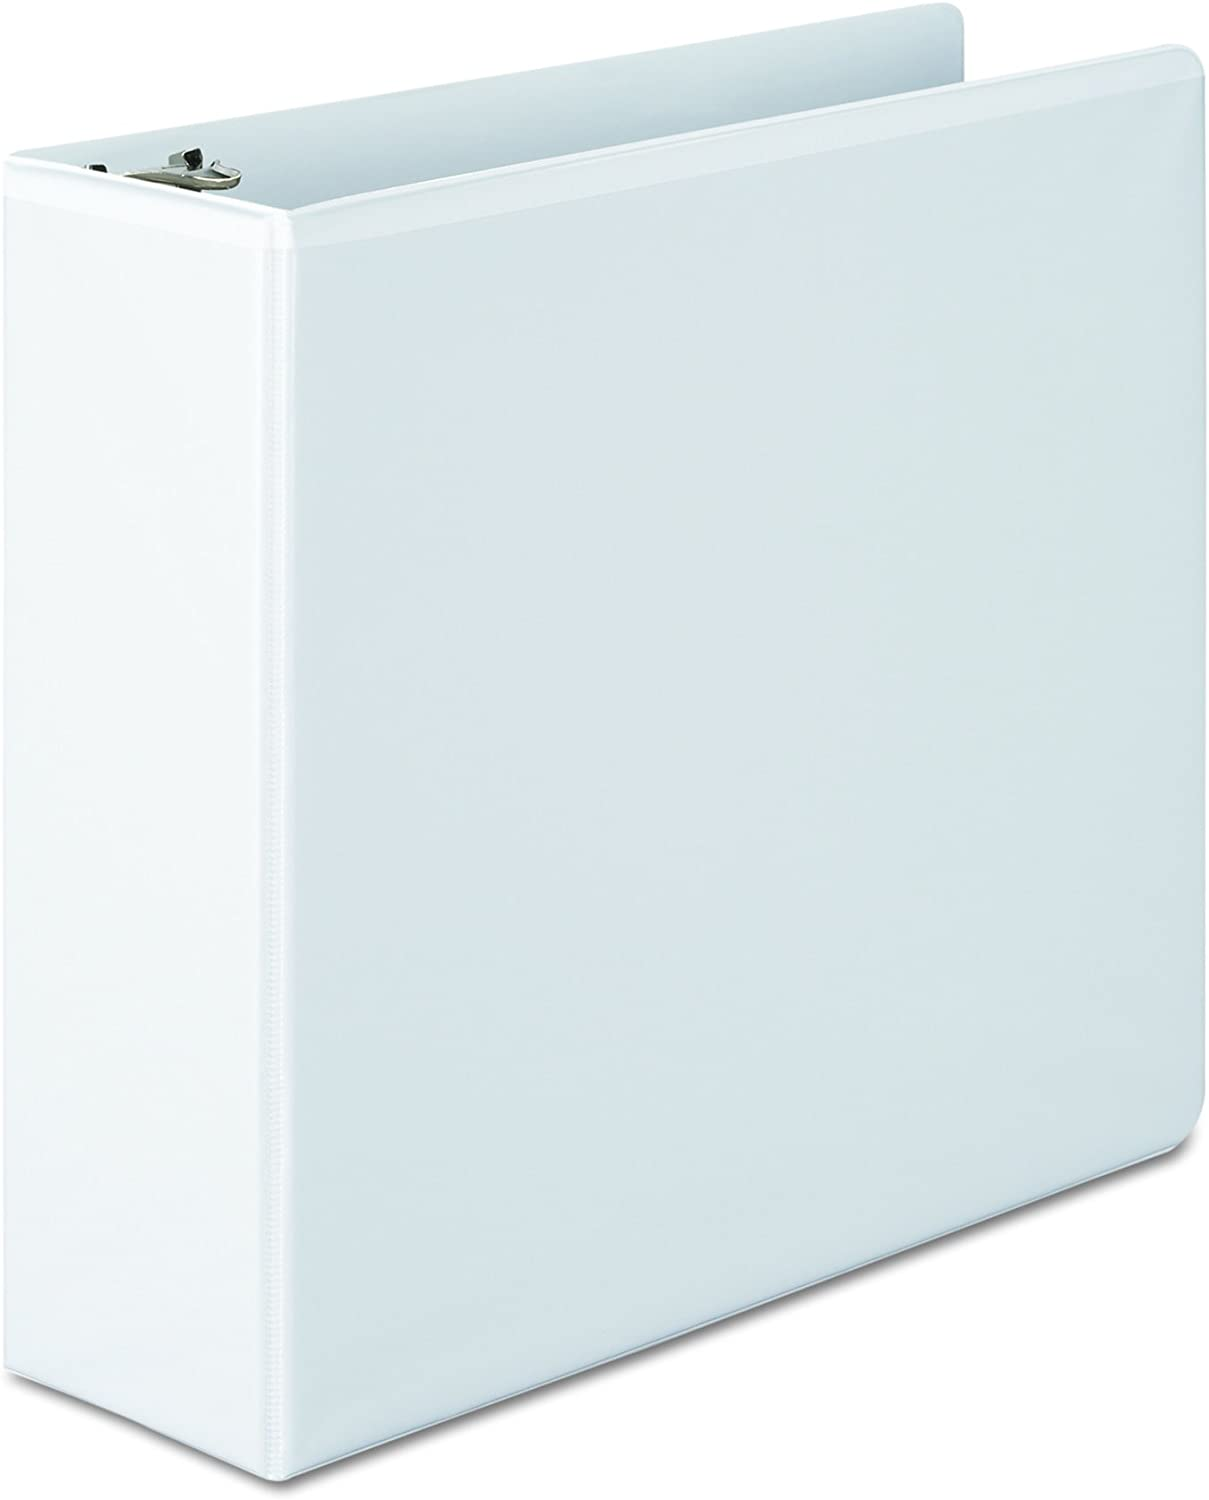 Wilson Jones 3 Inch 3 Ring Binder, Basic Round Ring View Binder, White (W362-49W) : Office Products